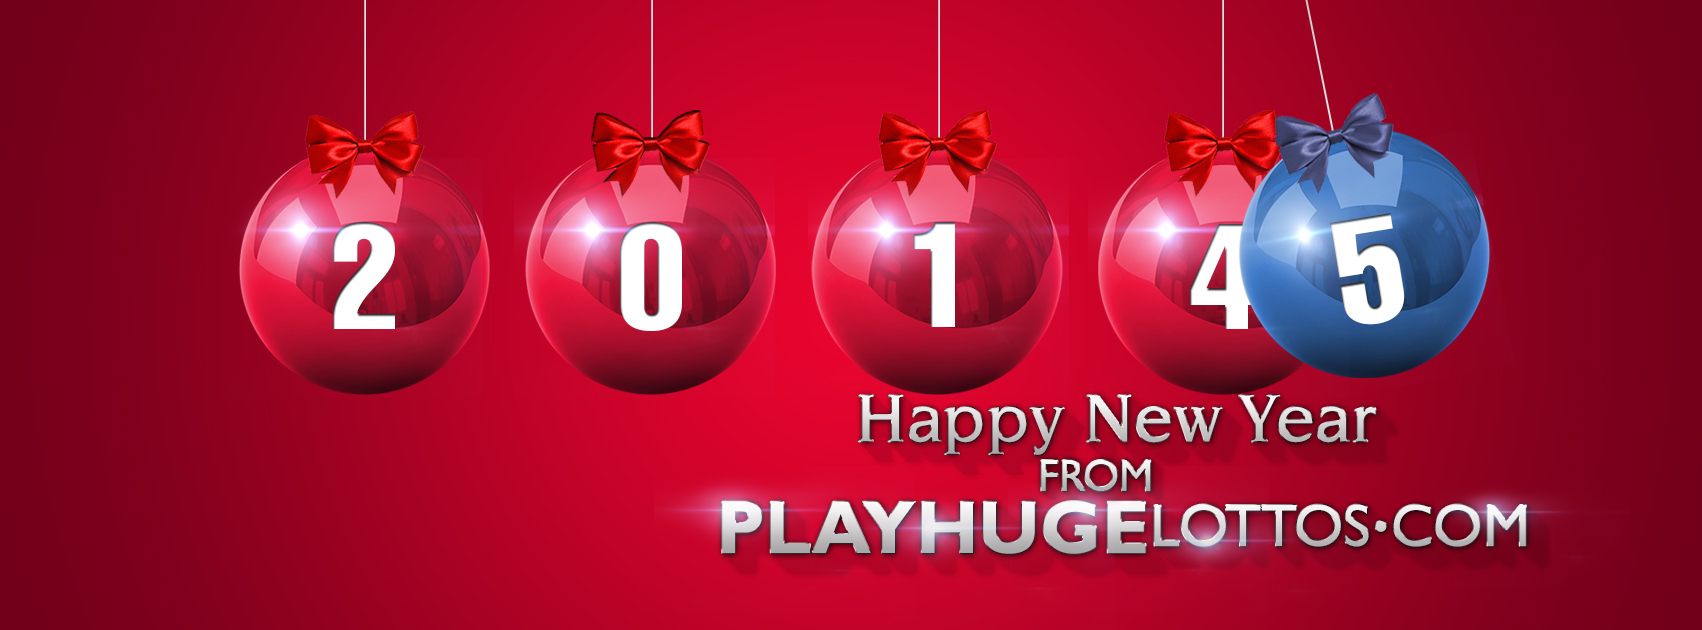 Happy New Year from all of us at PlayHugeLottos.com!